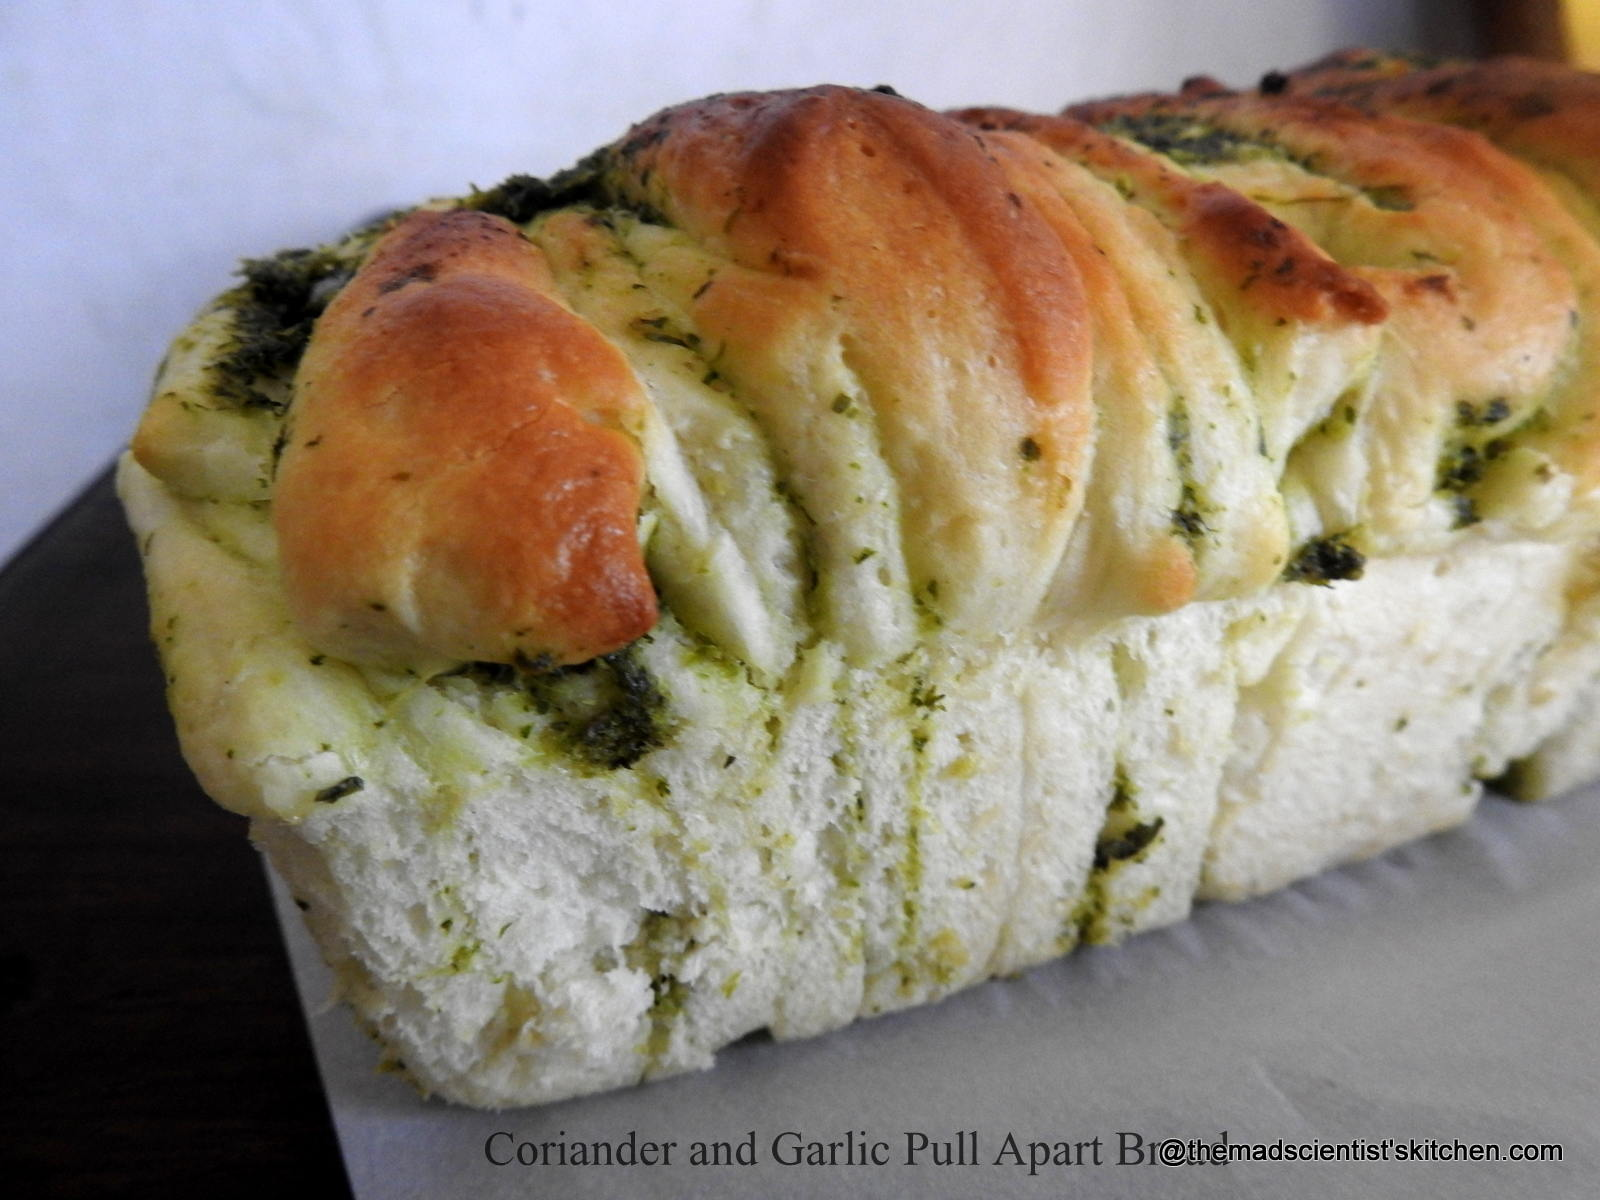 Coriander and Garlic Pull Apart Bread for #BreadBakers